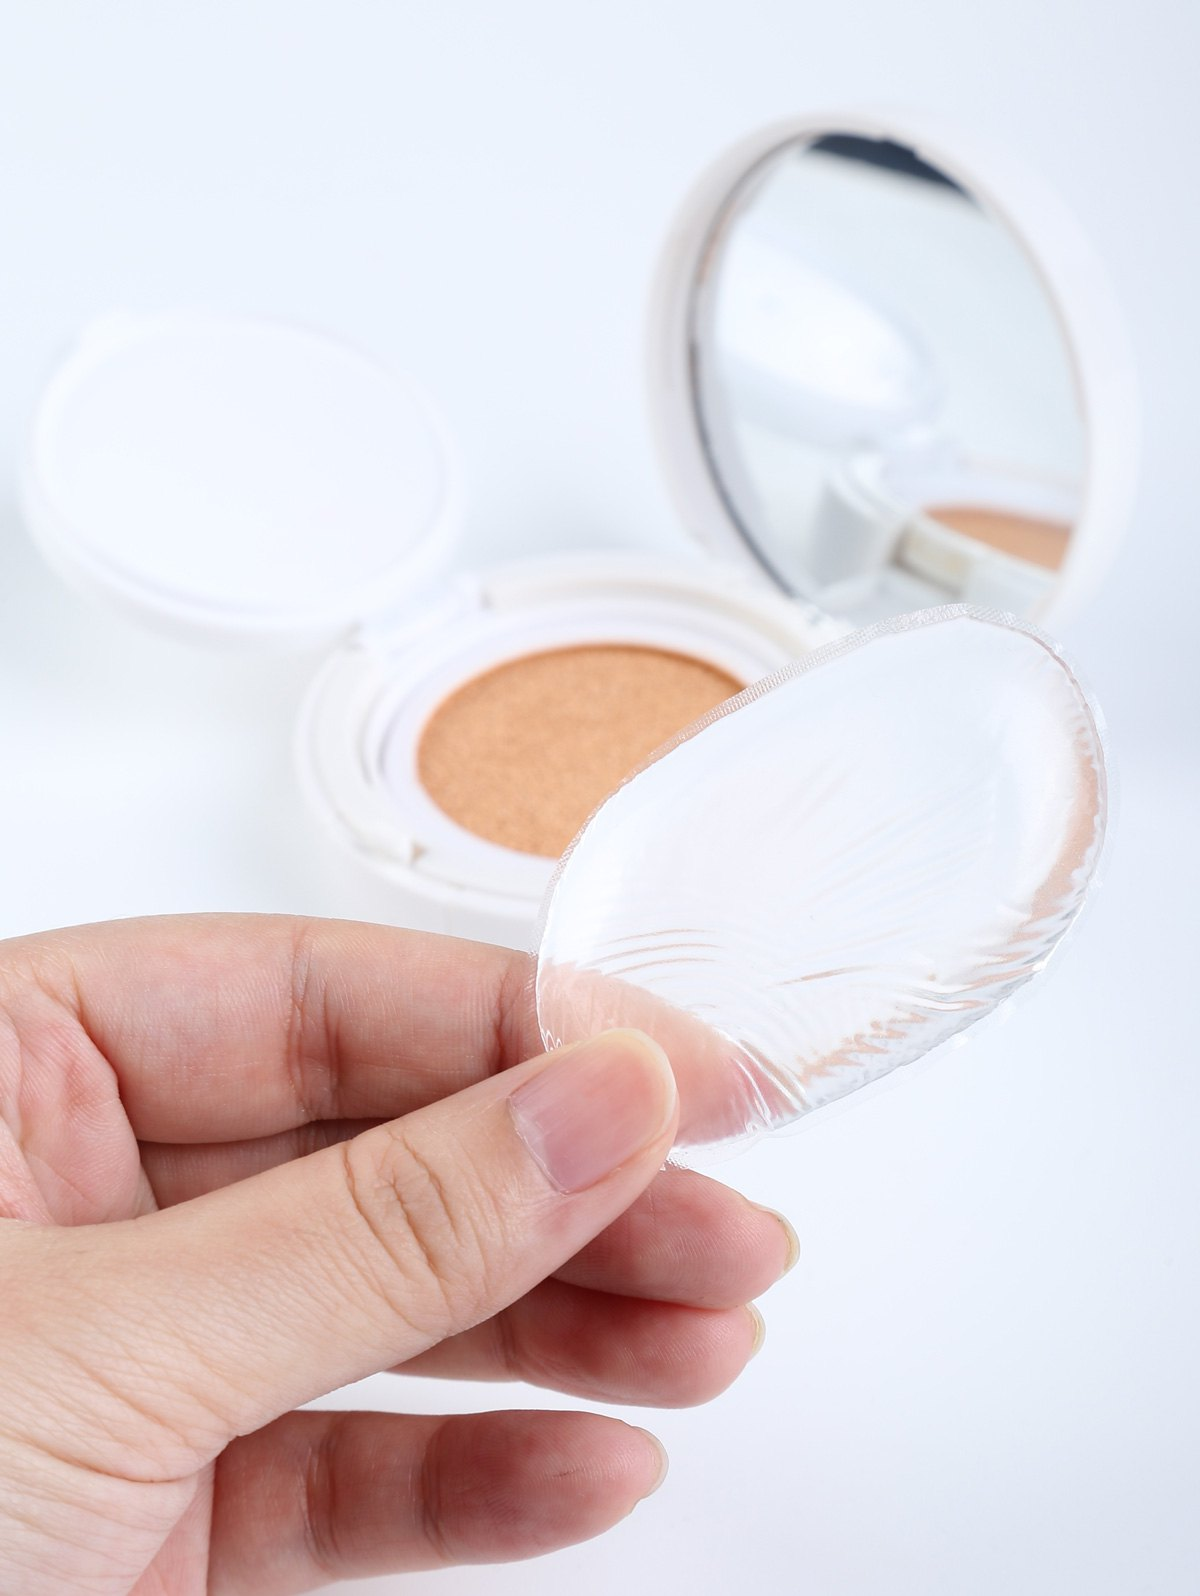 Forme ovale Maquillage silicone éponge - Transparent